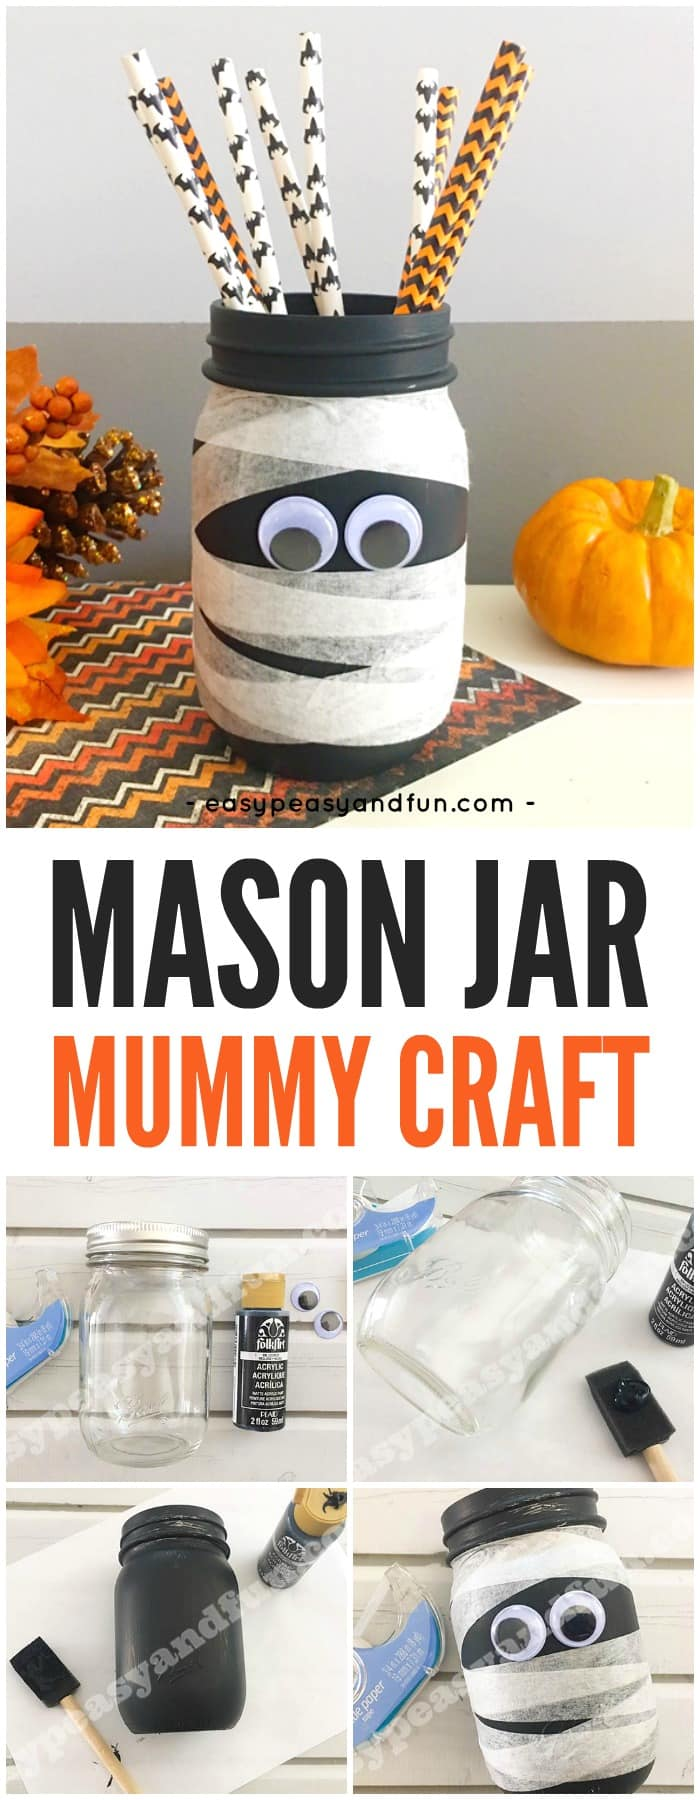 Mason Jar Mummy Craft, by Easy Peasy and Fun